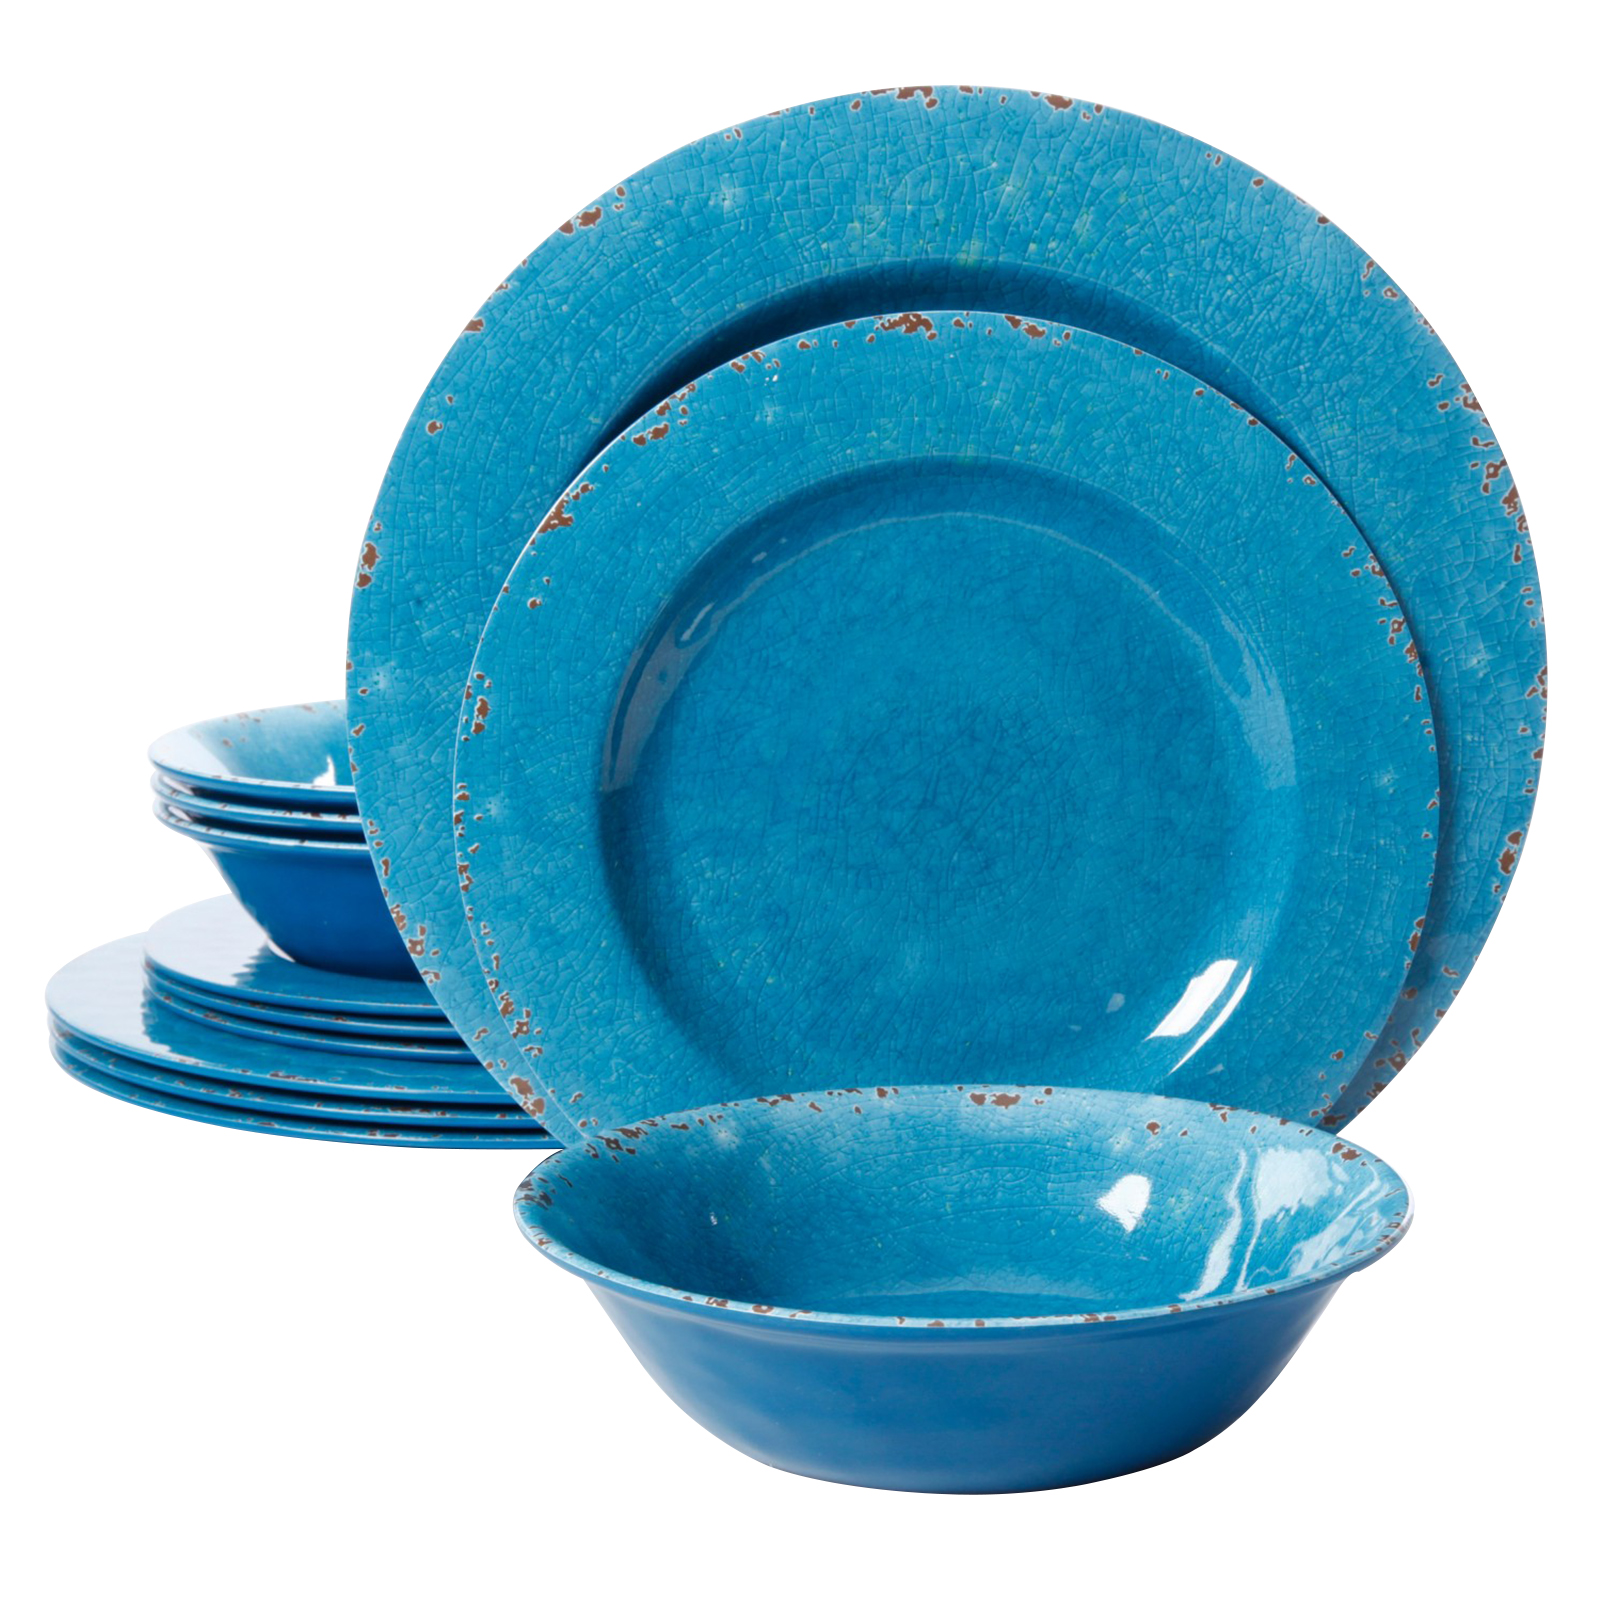 Studio California Mauna 12 Piece Melamine Dinnerware Set in Blue Crackle Look Decal  sc 1 st  Walmart : blue melamine dinnerware - pezcame.com